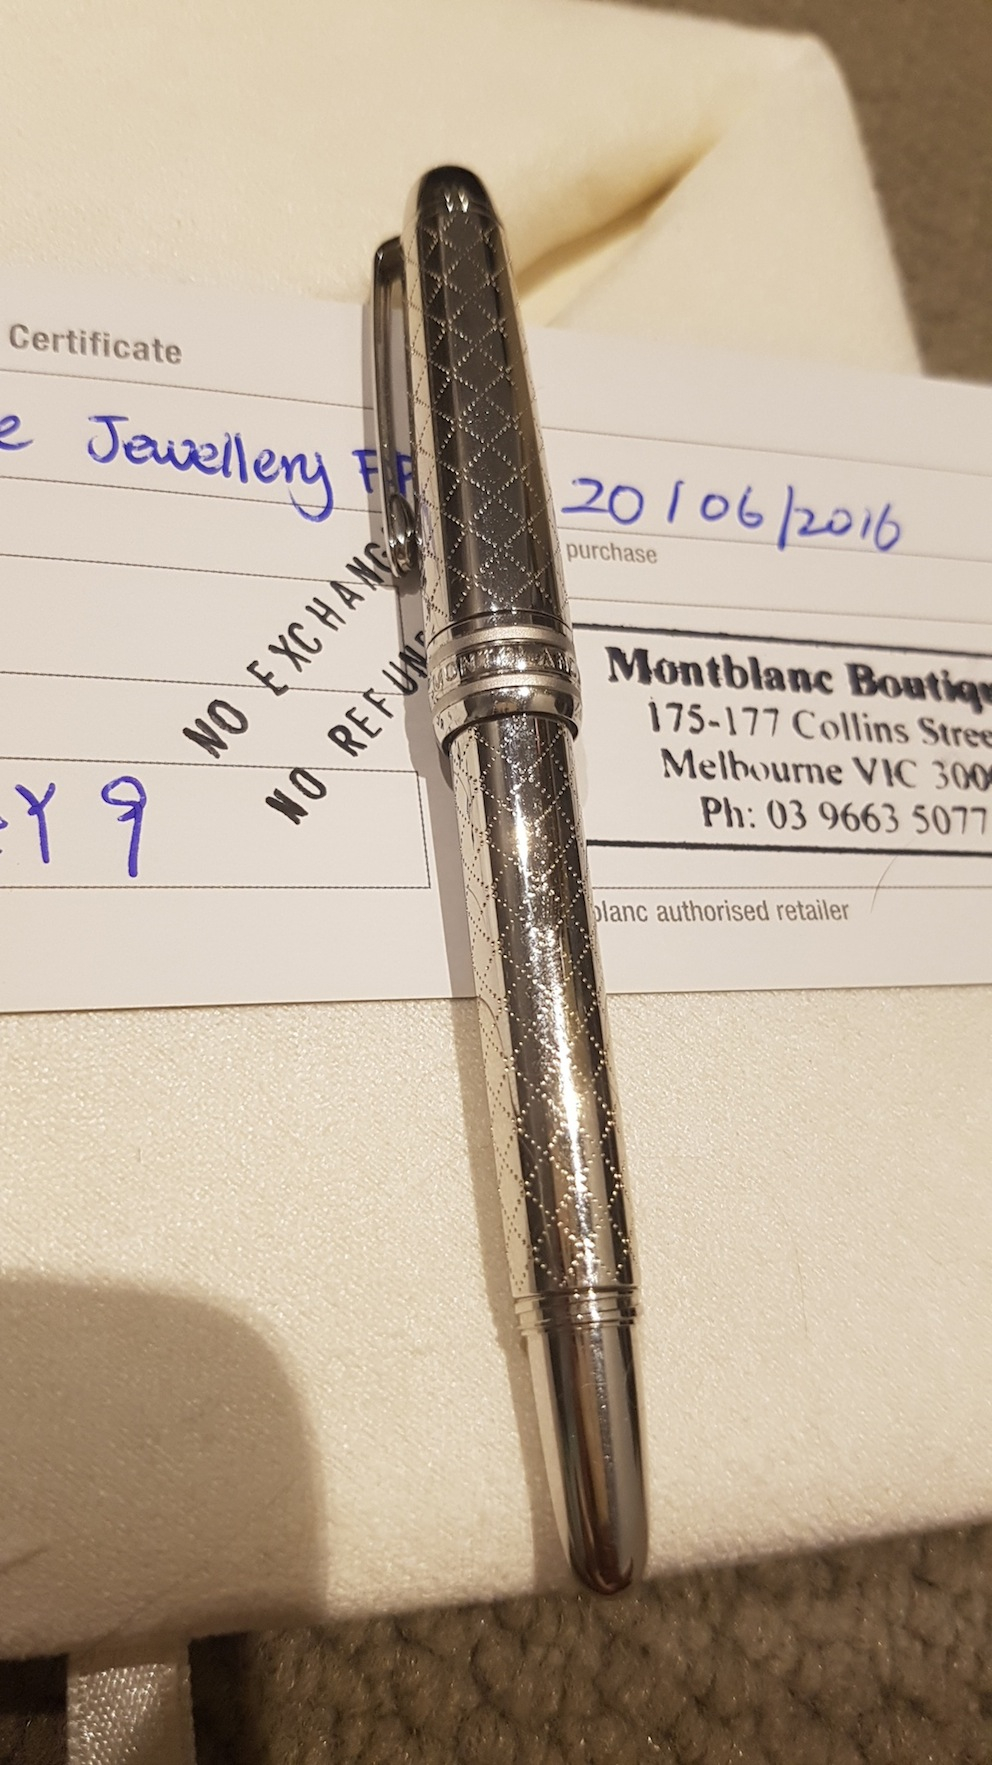 Pens and Pencils: : Mont Blanc: MBJB3F4Y9